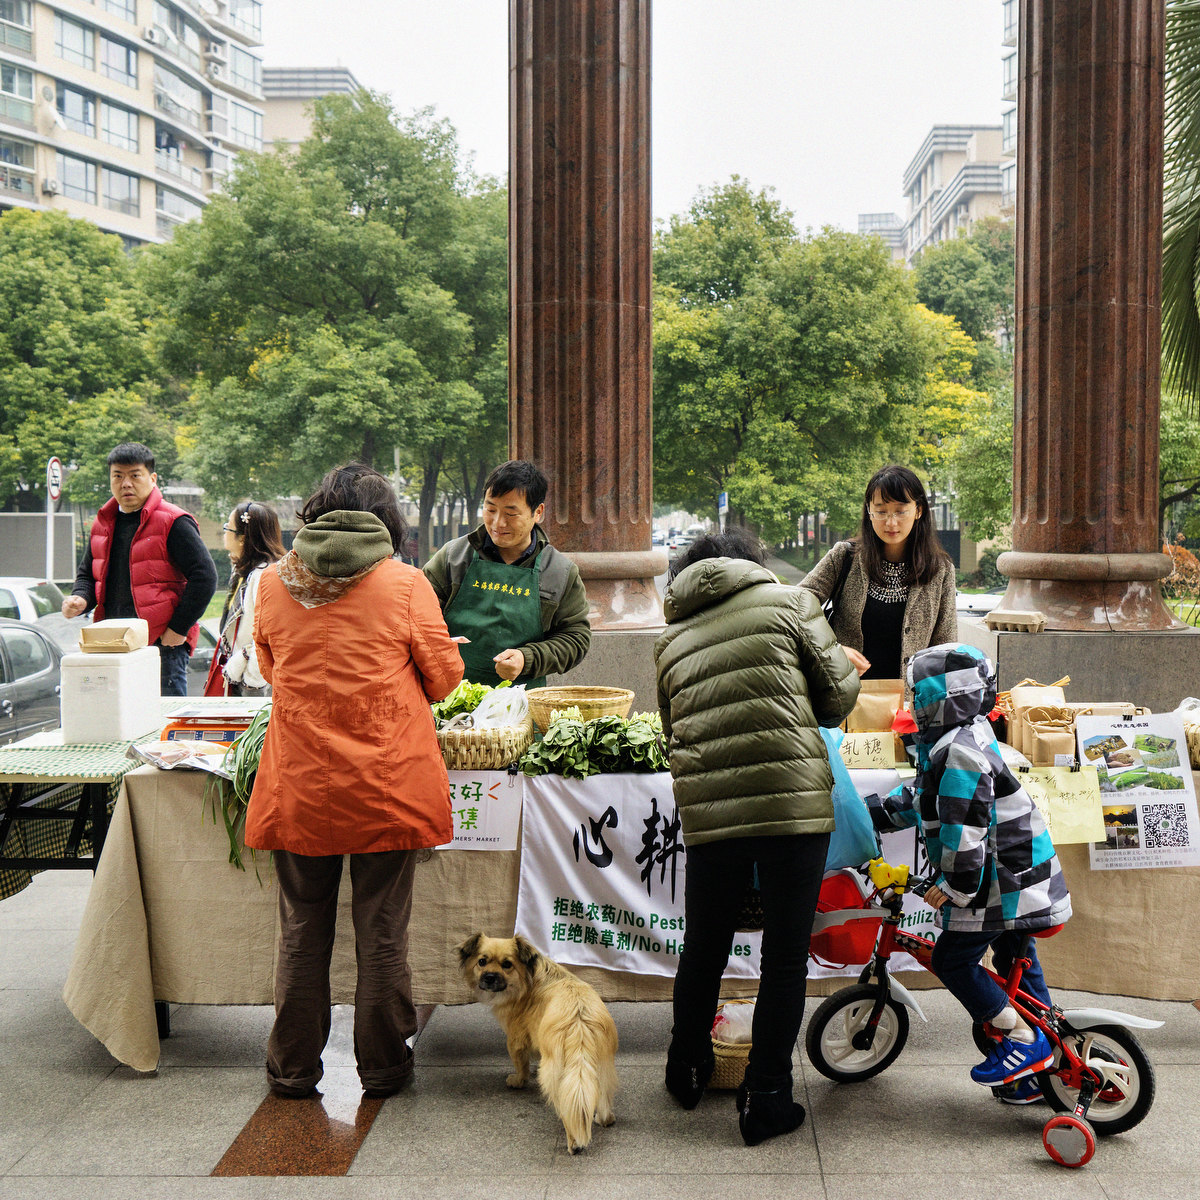 DH_CHINA_2015_ORGANIC FOOD_0479FIN_SQ_1200PIX.jpg